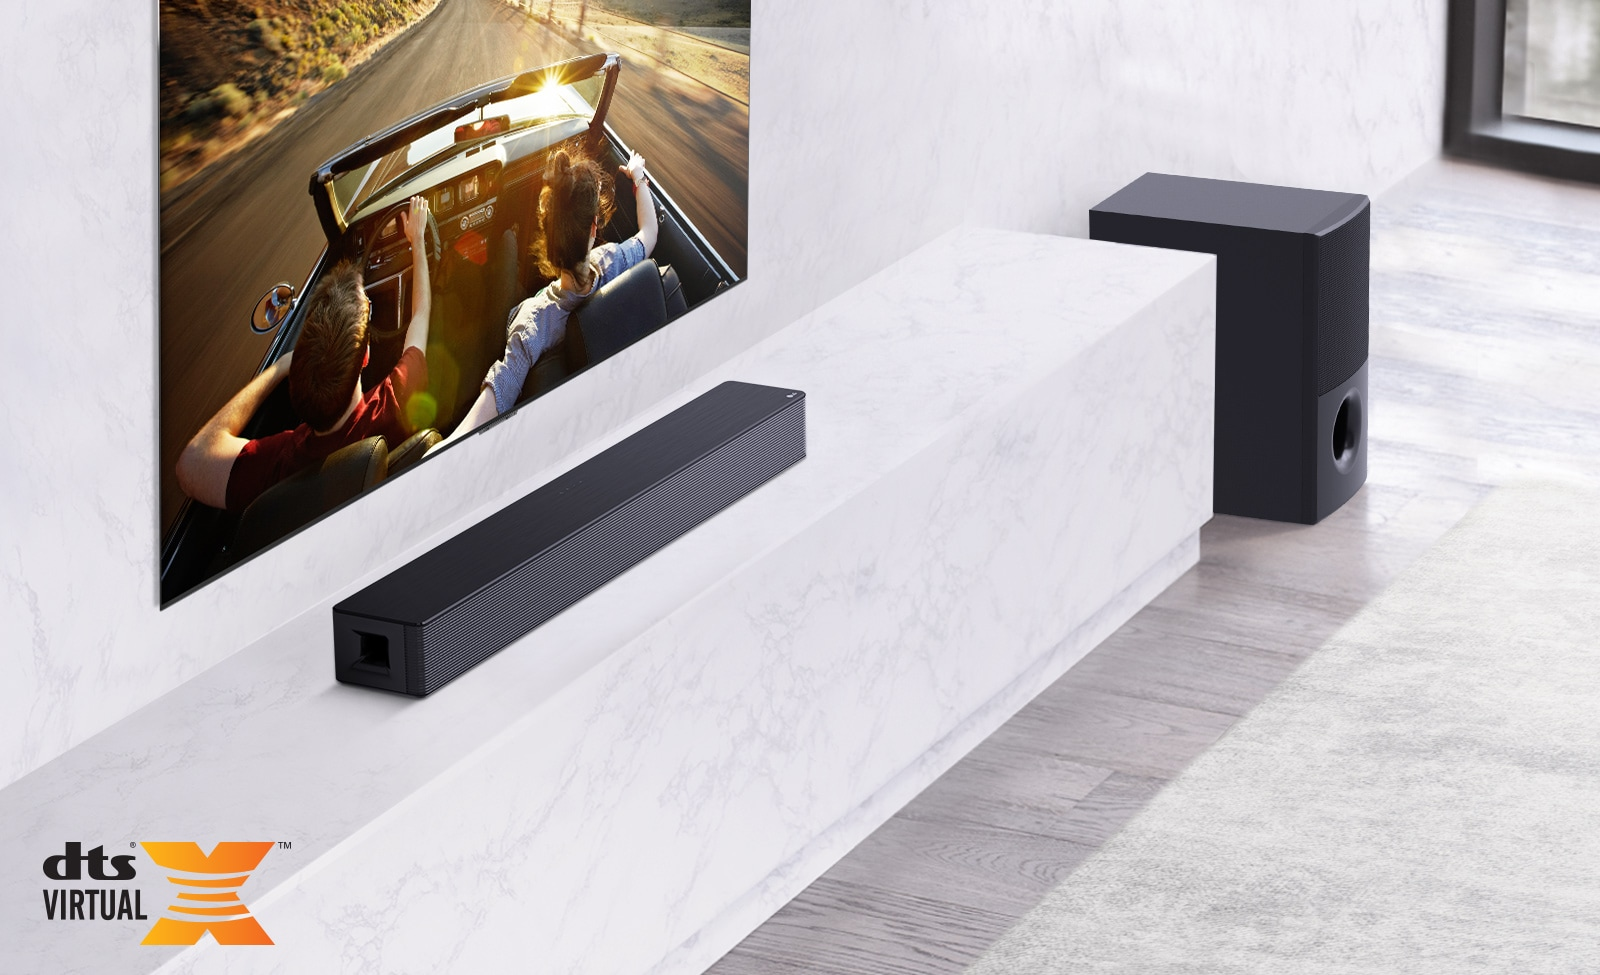 TV is on the wall, LG Soundbar is below on a white marble shelf with a sub-woofer to the right. TV shows a couple in a car.